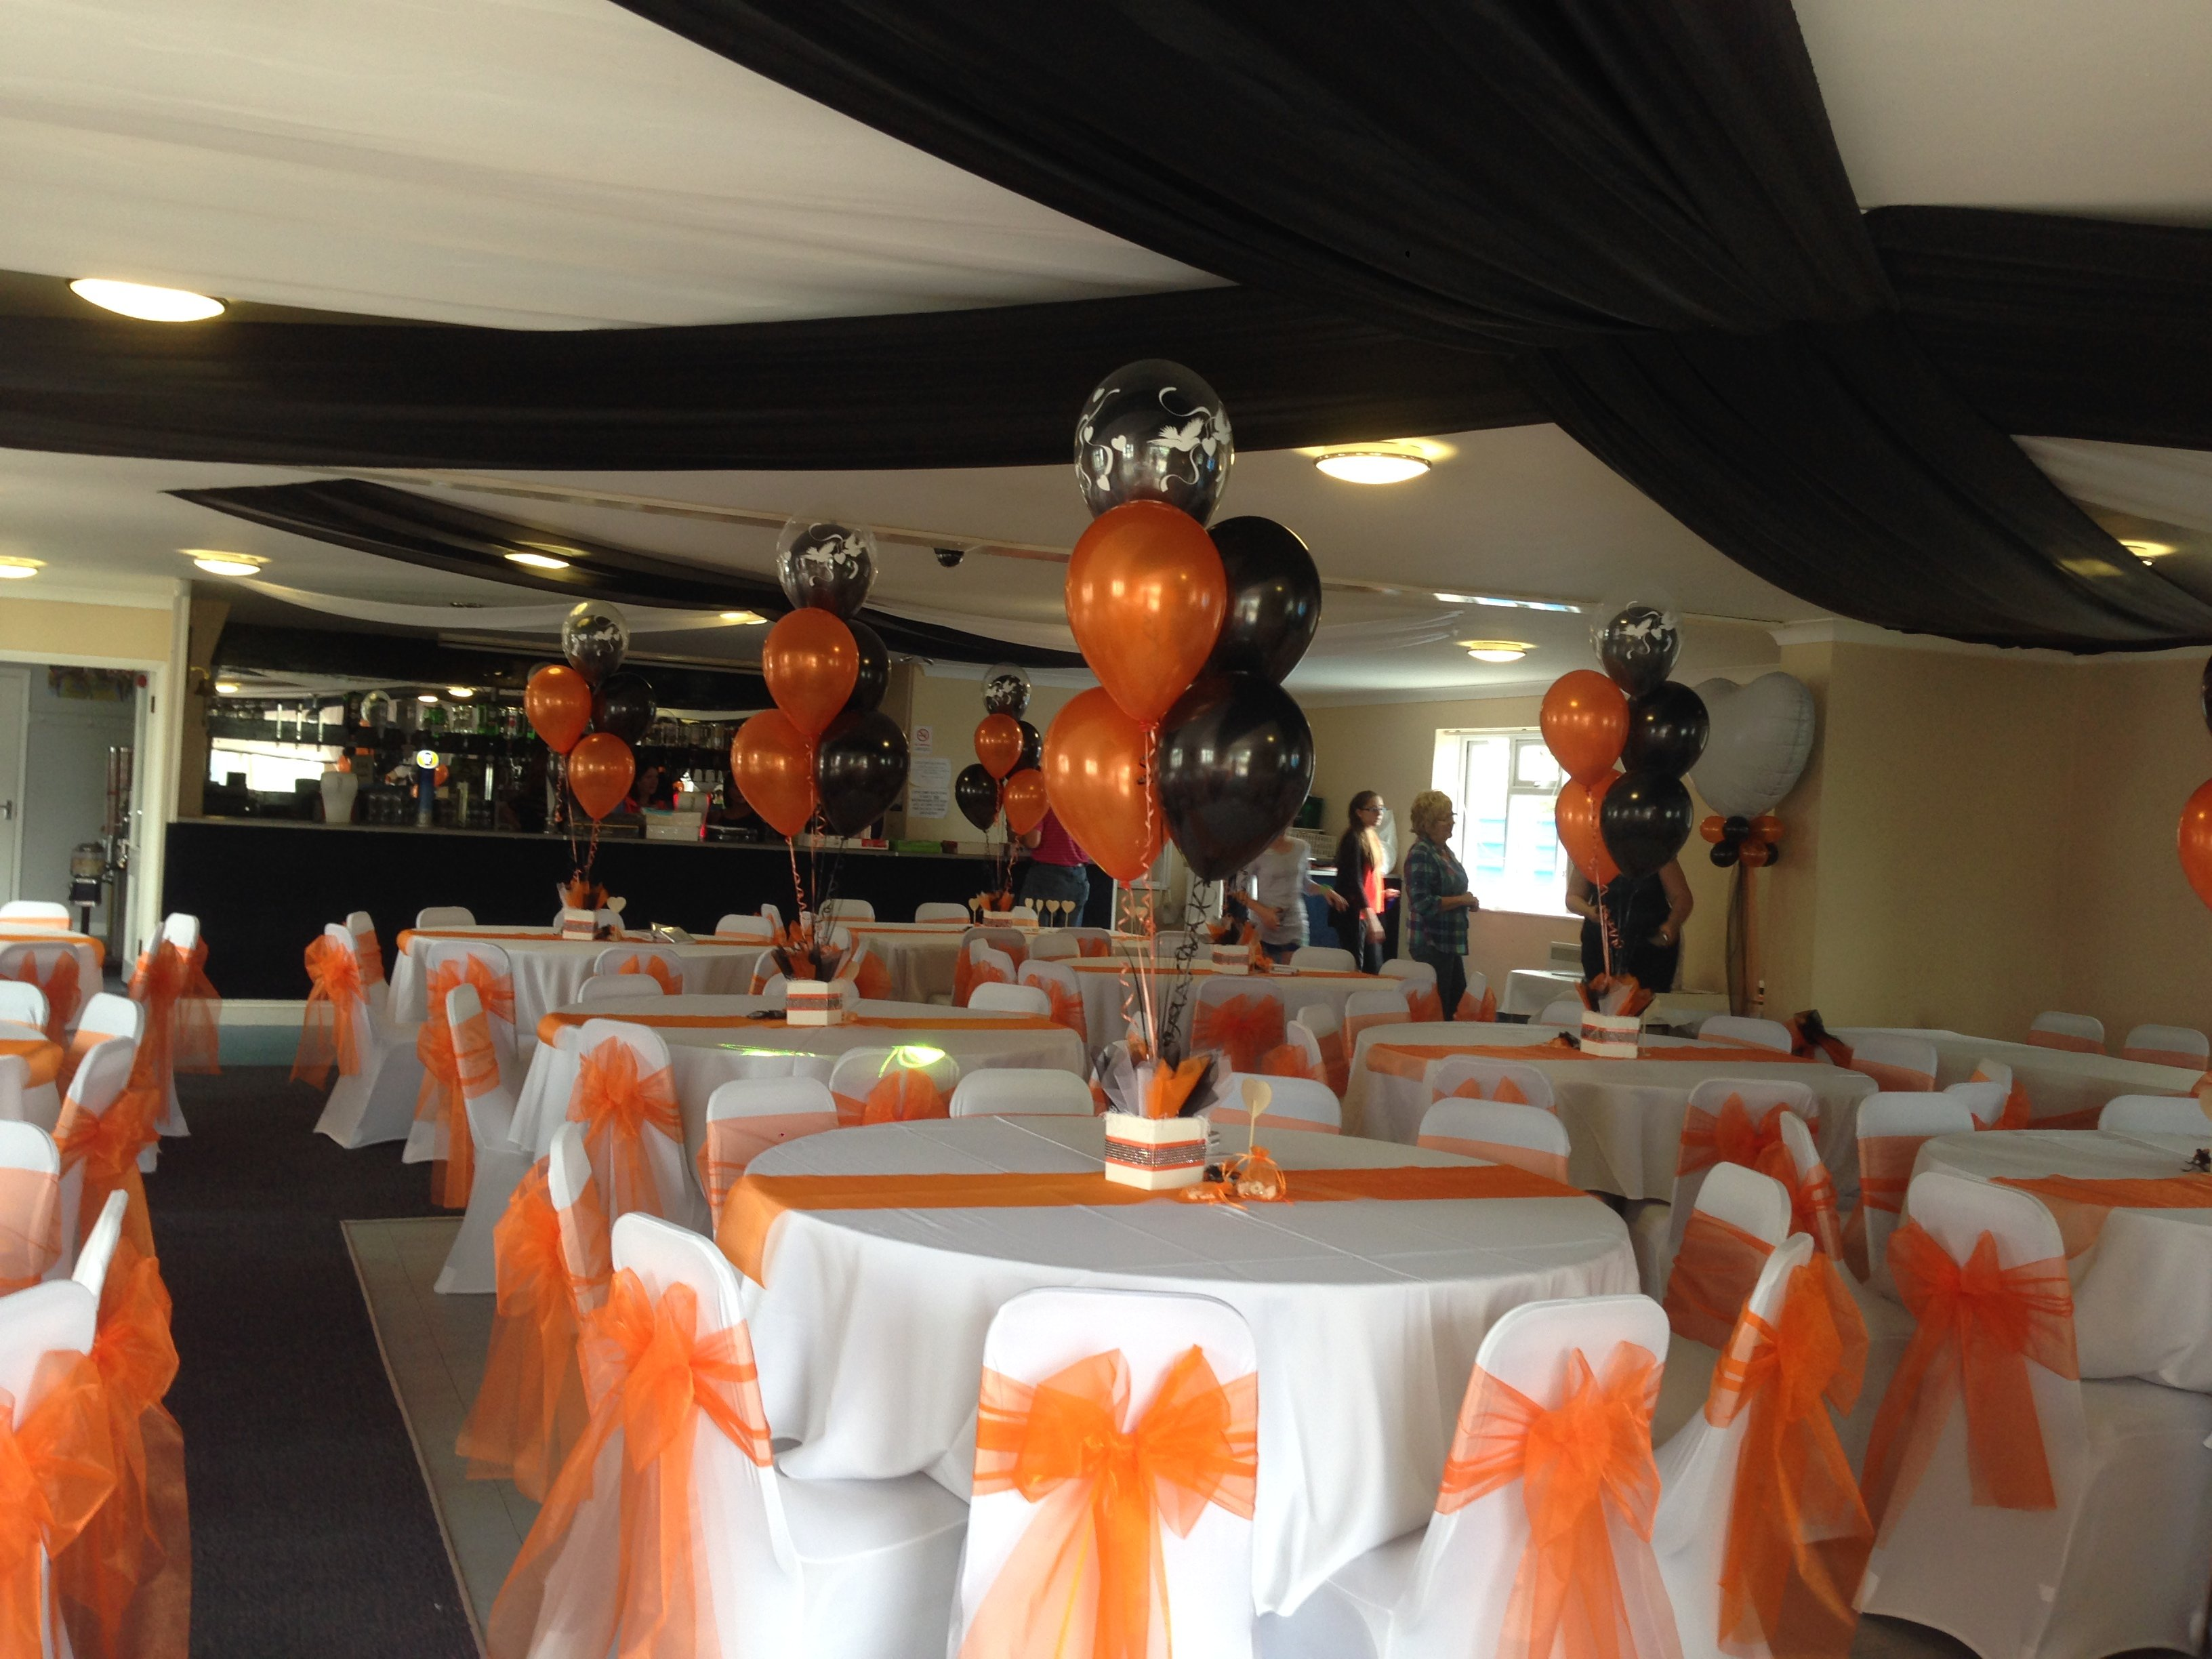 Orange organza sashes and white chair covers and Concord Rangers FC